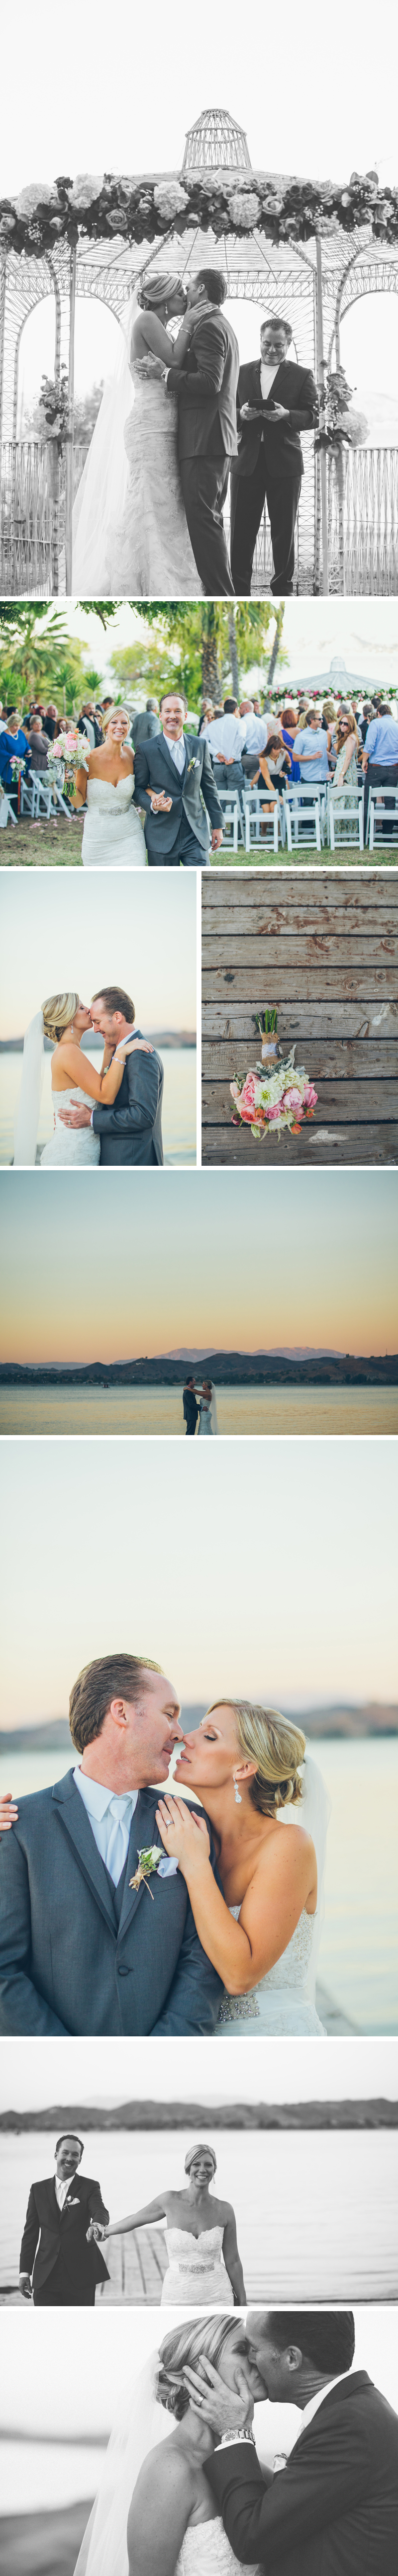 elsinore-wedding7